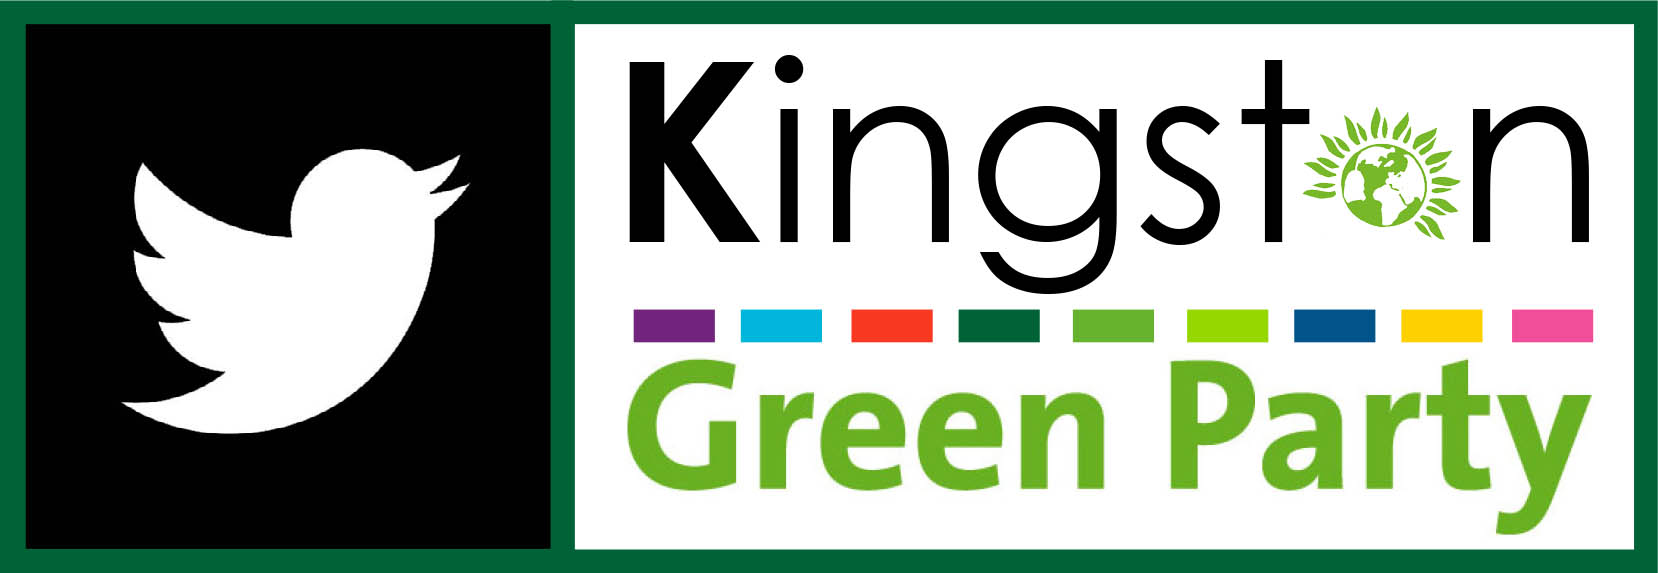 kingston green party twitter